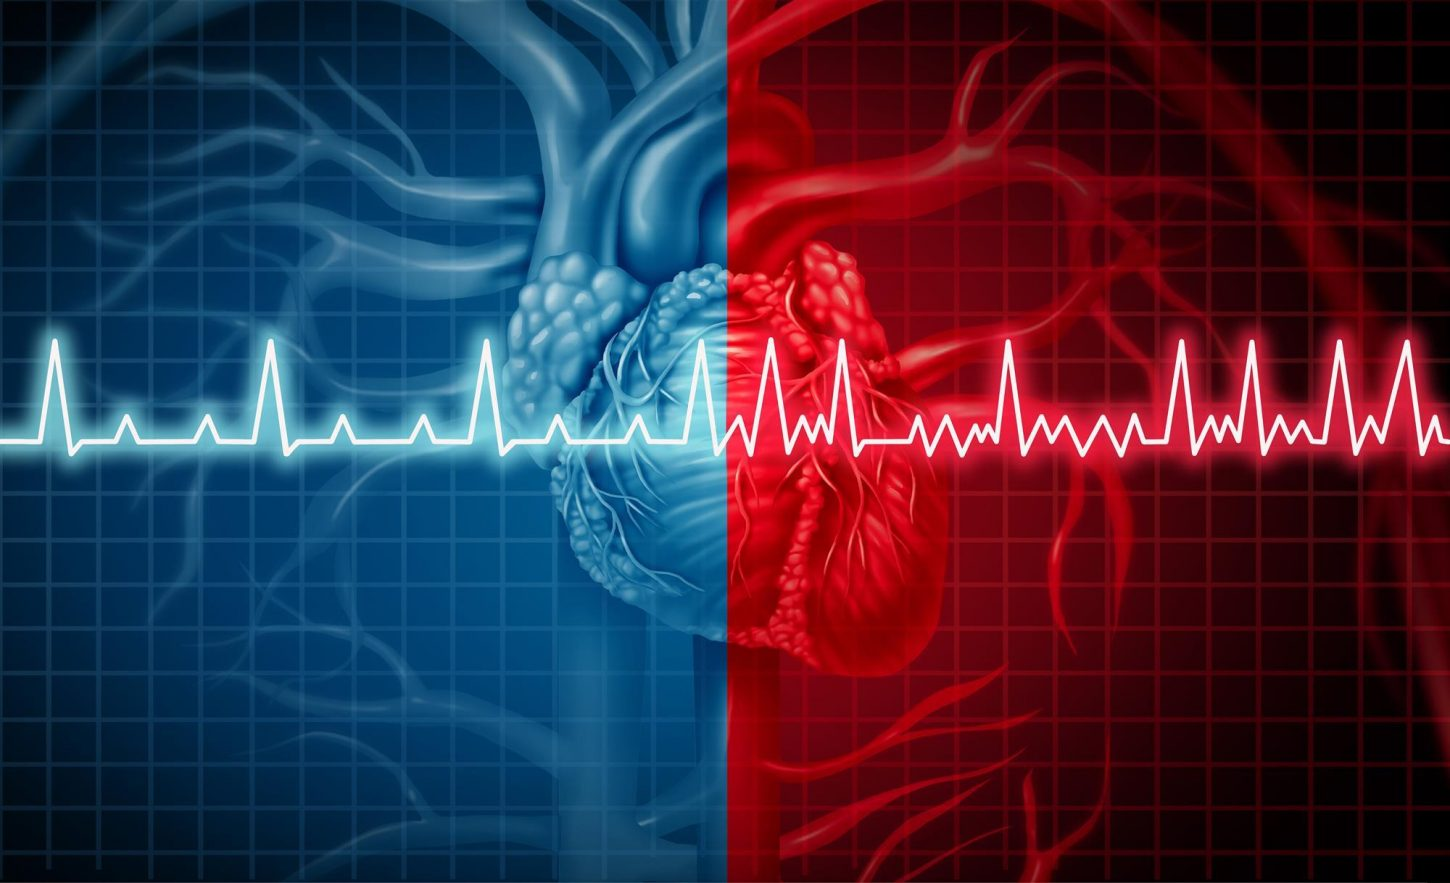 atrial fibrillation and a heart